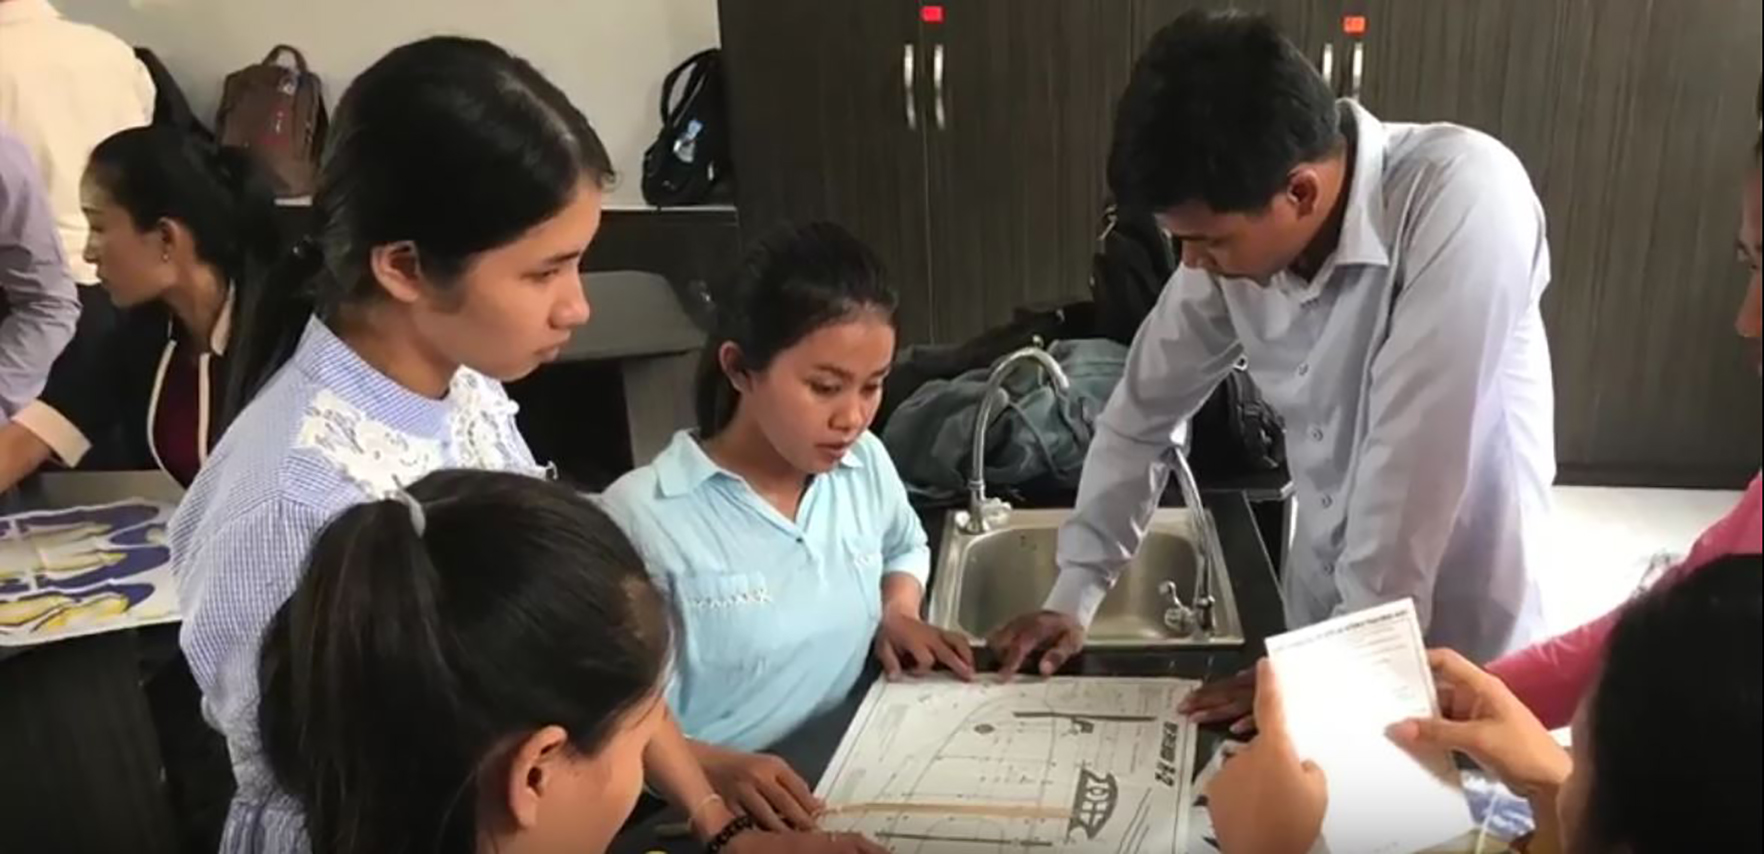 Students working on STEM projects in Cambodia